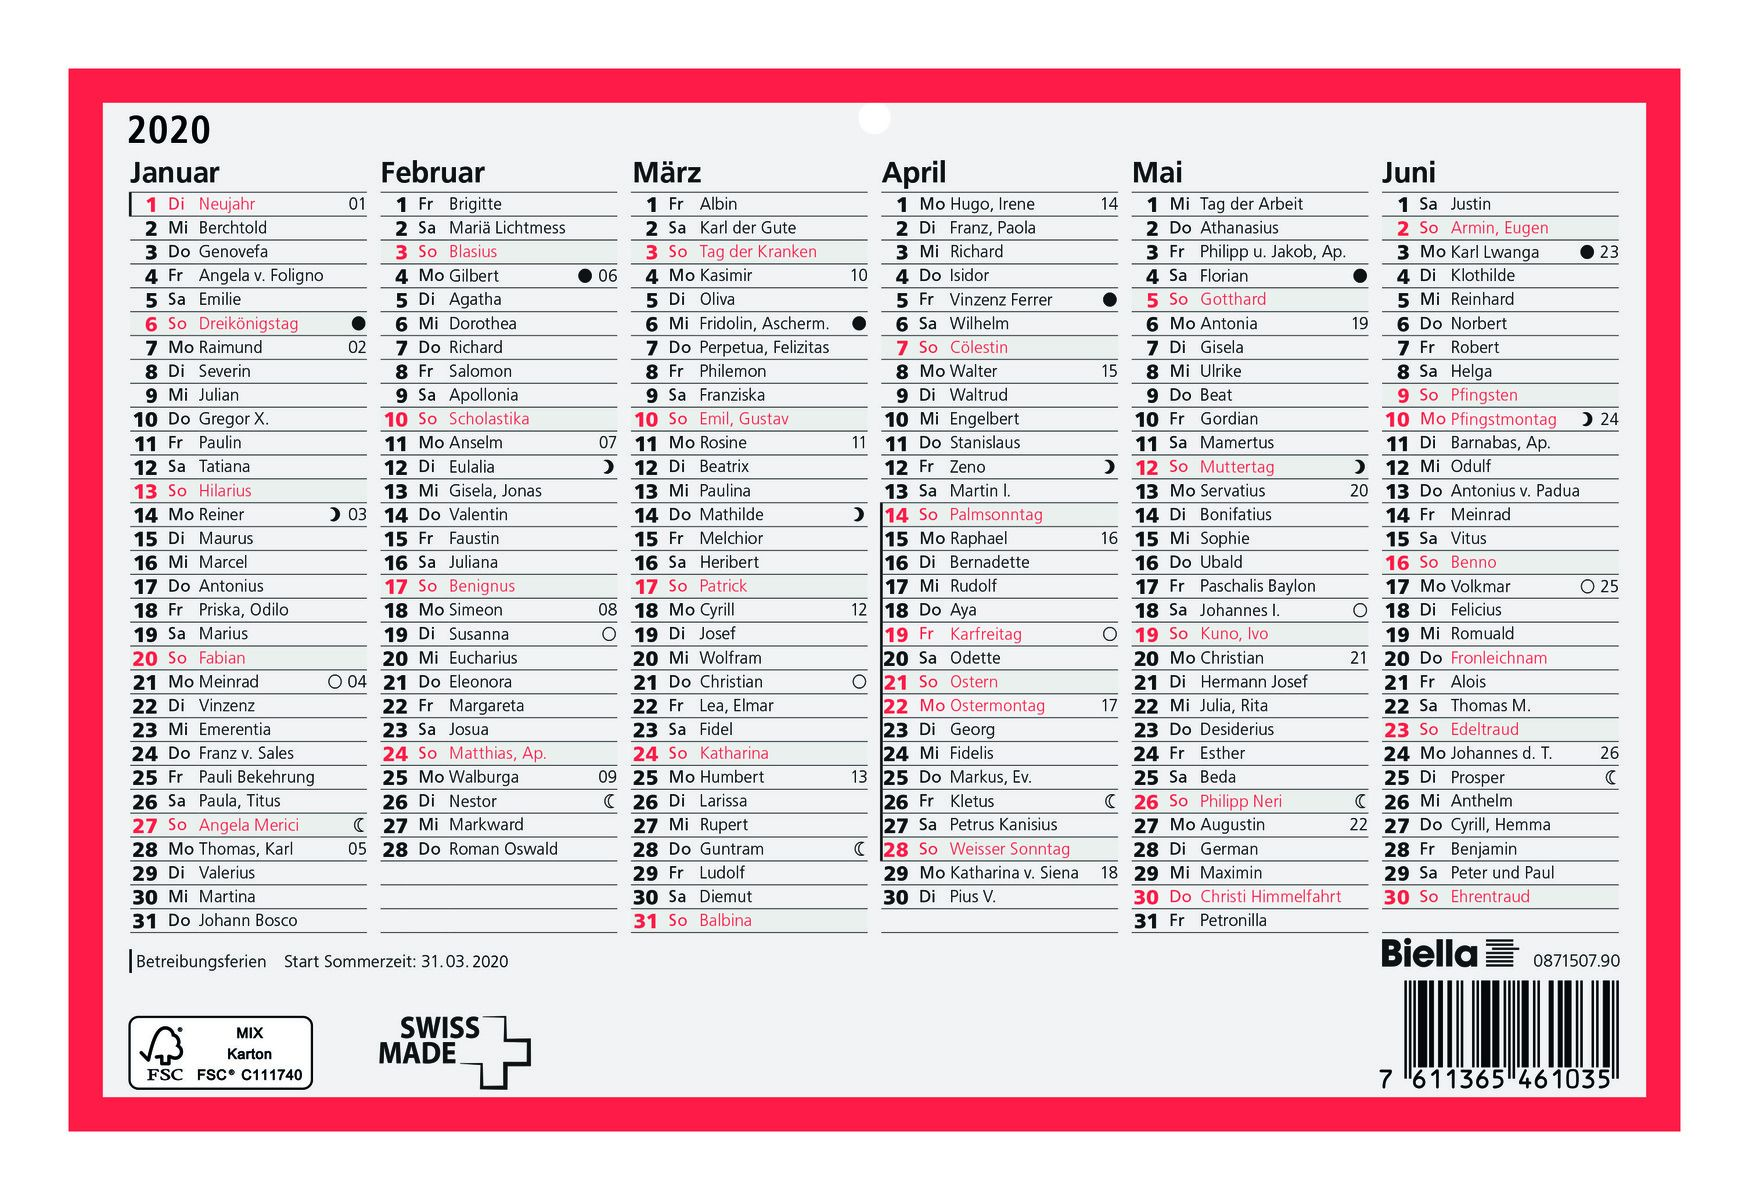 Calendario Tedesco 2020.Biella Calendario 235 X 155 Mm 2020 Tedesco